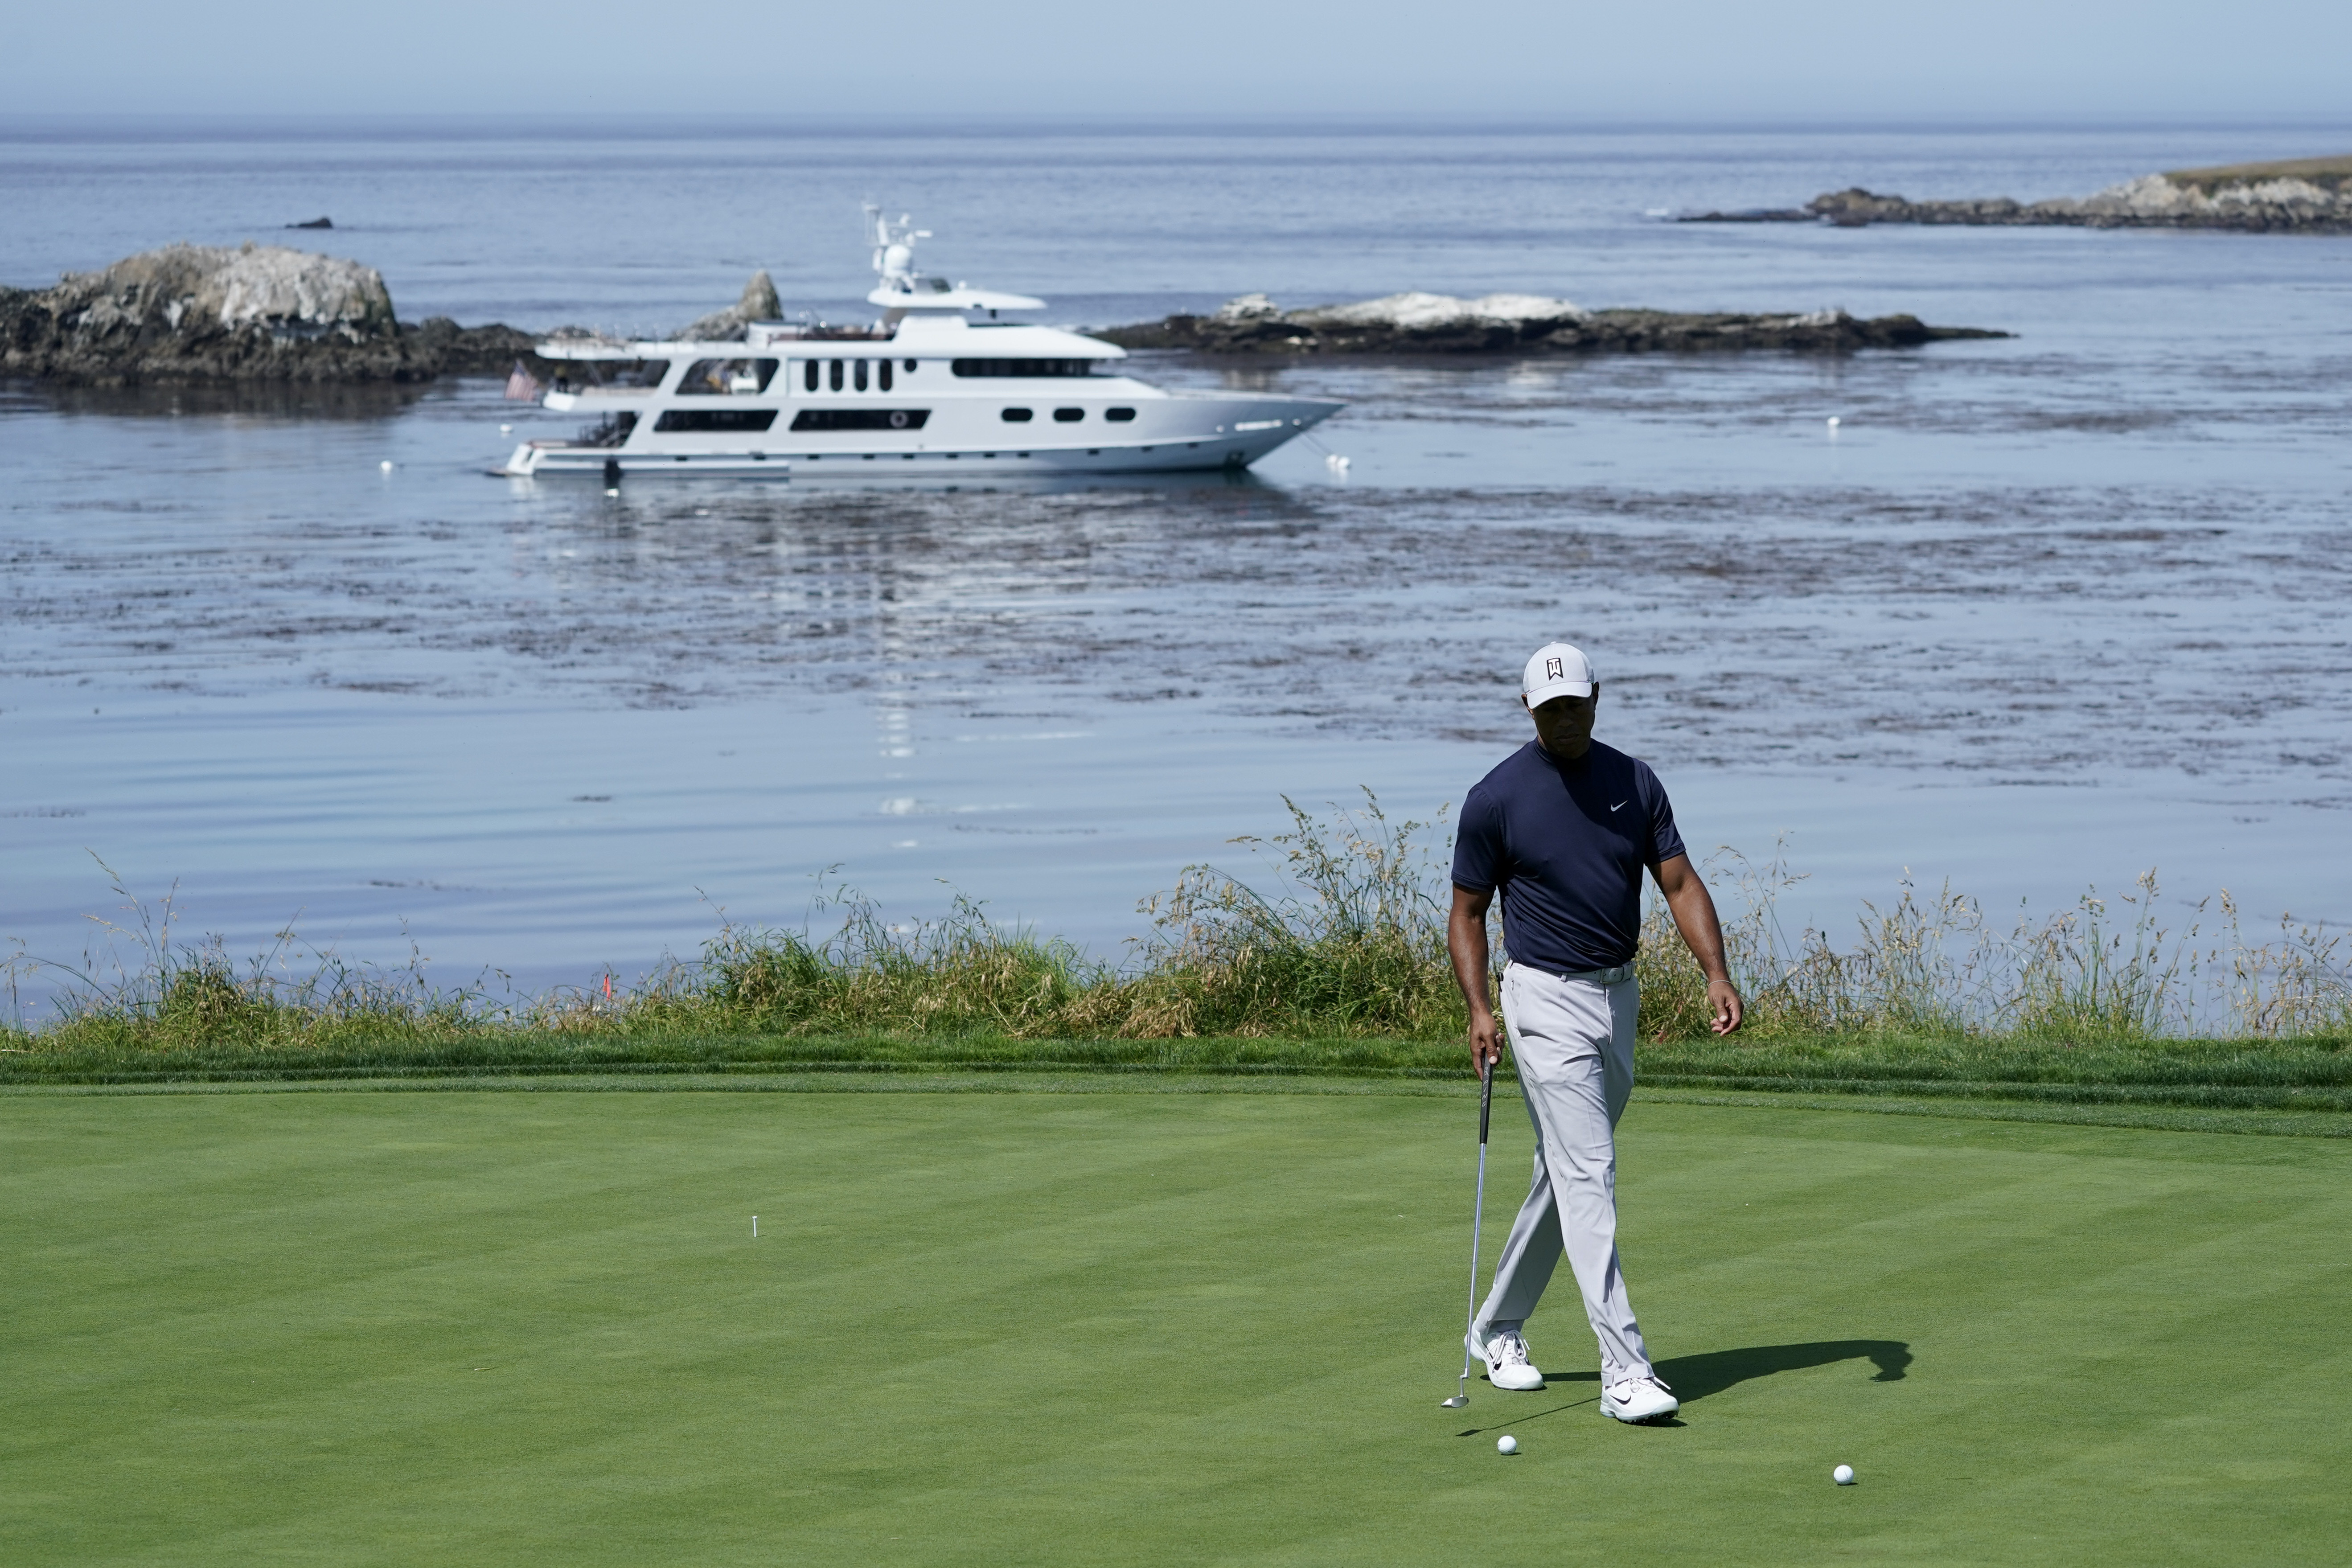 U.S. Open 2019 leaderboard: Live stream, tee times, scores from 1st round